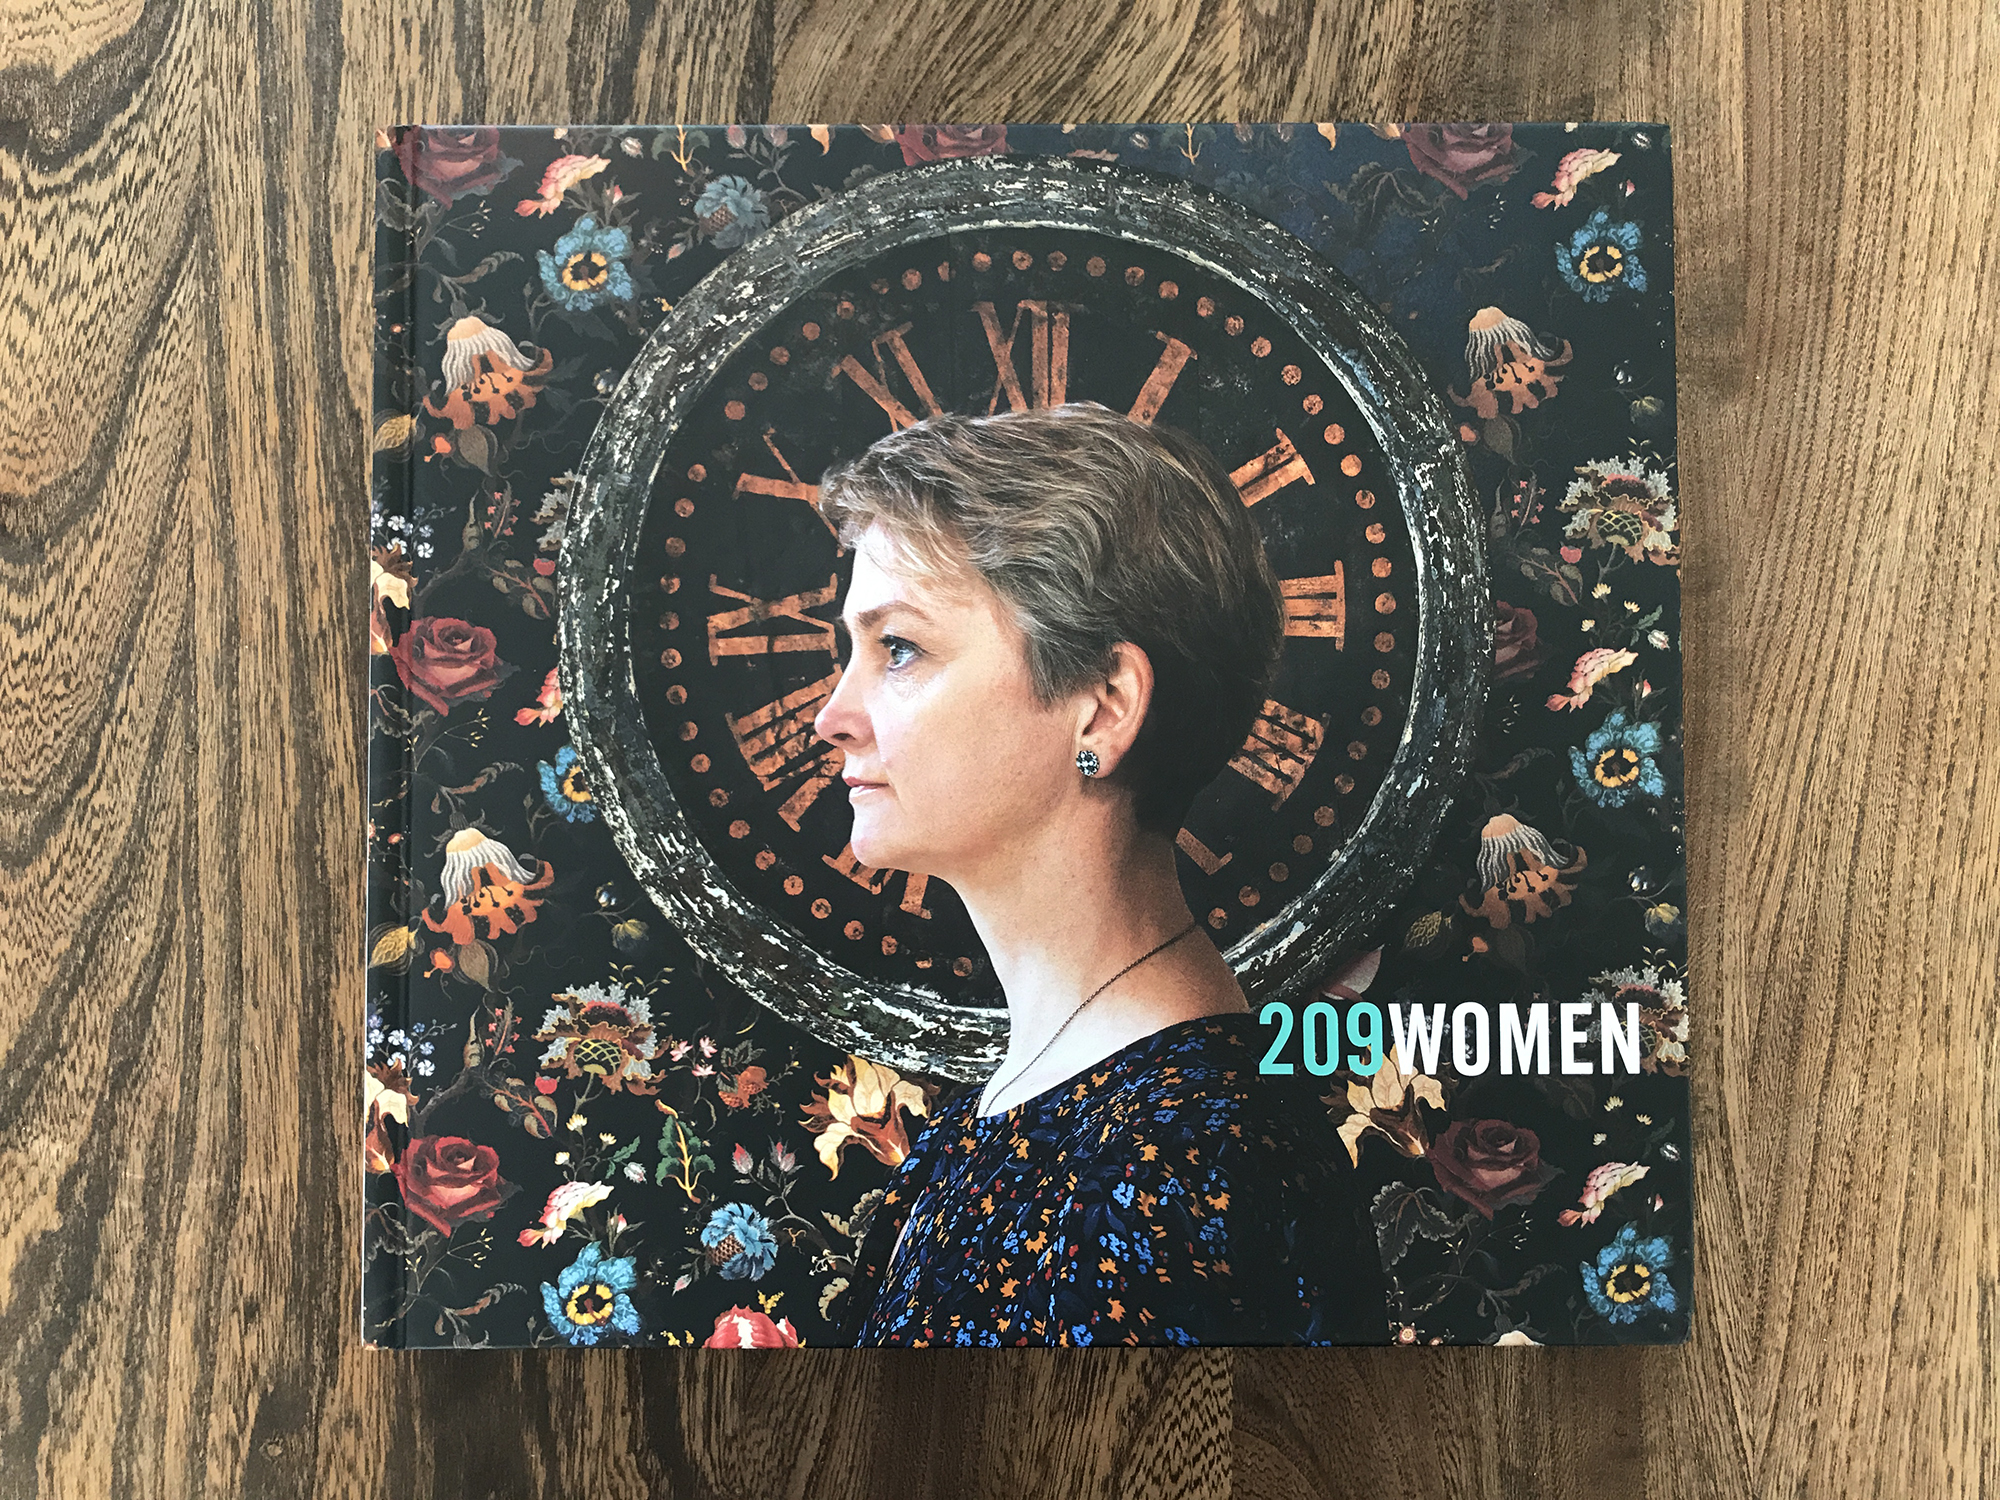 """(2019)   209 Women  , Bluecoat. (Cover Image: Yvette Cooper, MP for Normanton, Pontefract and Castleford,  Photographed by Hannah Starkey )  Curatorial Team: Hilary Wood, Tracy Marshall, Cheryl Newman, Lisa Tse.  Commissioned to create work for 209 Women:  """" 209 Women marks 100 years since the first general election in which some women could vote. It seeks to champion the visibility of women: particularly in politics, where decisions are made that affect people of all genders. It features new portraits of the UK's women MPs, shot entirely by photographers that identify as women""""   Delivered in partnership with the Open Eye Gallery, The Royal Photographic Society and The Sorority. It was funded by the Arts Council England, Liverpool City Council and the government's 'Women's Vote Centenary Fund'. It was sponsored by Aston Martin Lagonda, Power of Women series and Montessori St Nicholas and supported by Metro Imaging.   https://www.209women.co.uk"""